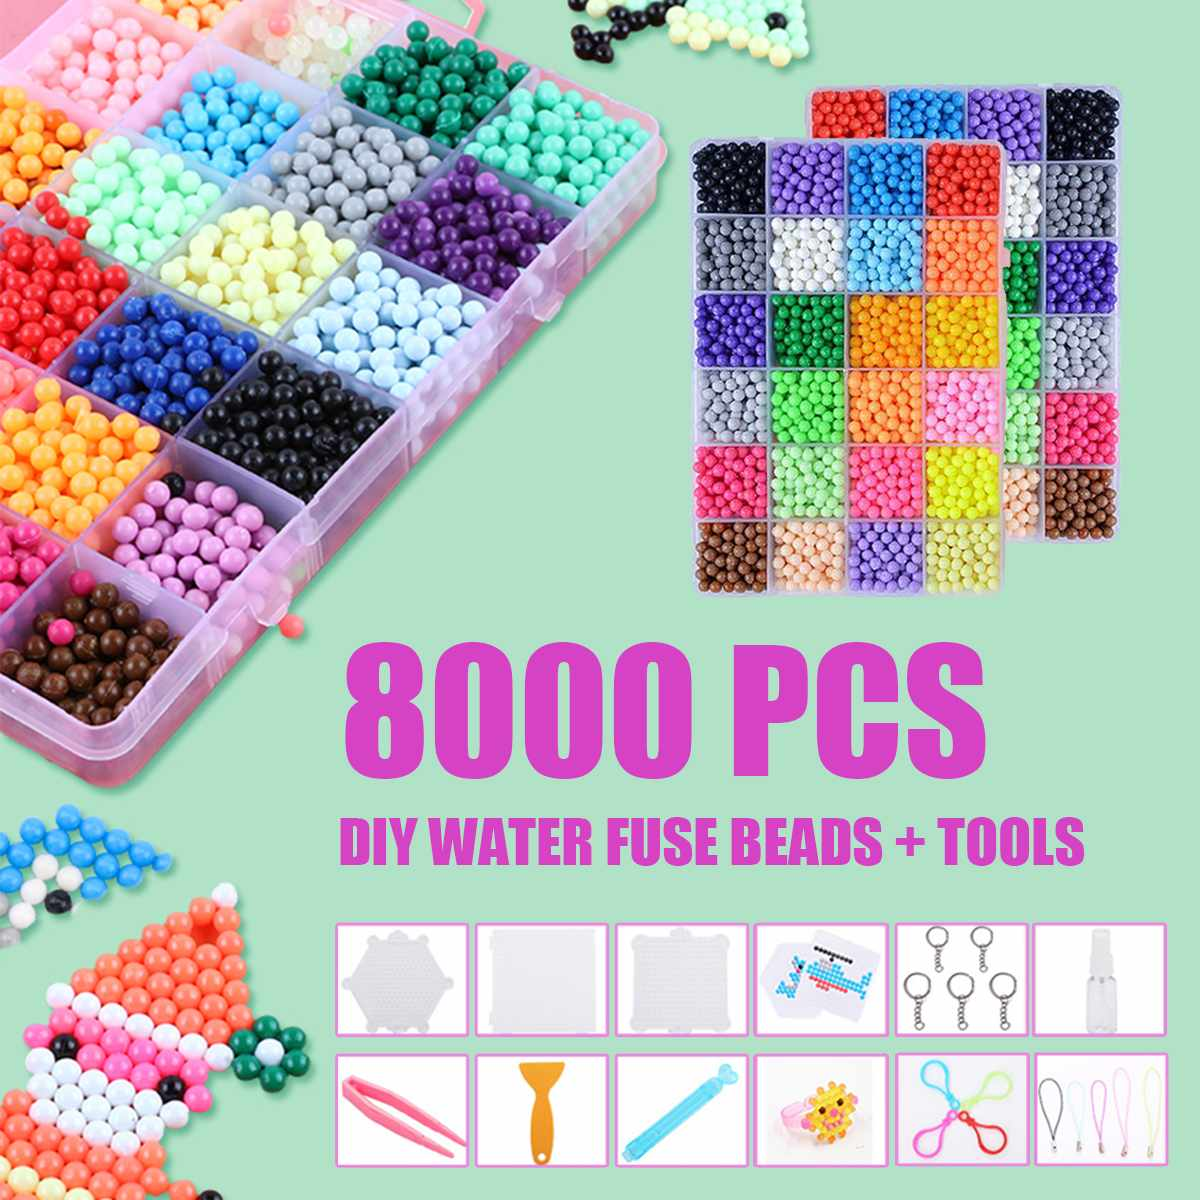 8000pcs 24 Colors Refill Beads Puzzle Crystal DIY Water Spray Beads Set Ball Games 3D Handmade Magic Toys For Children Gift